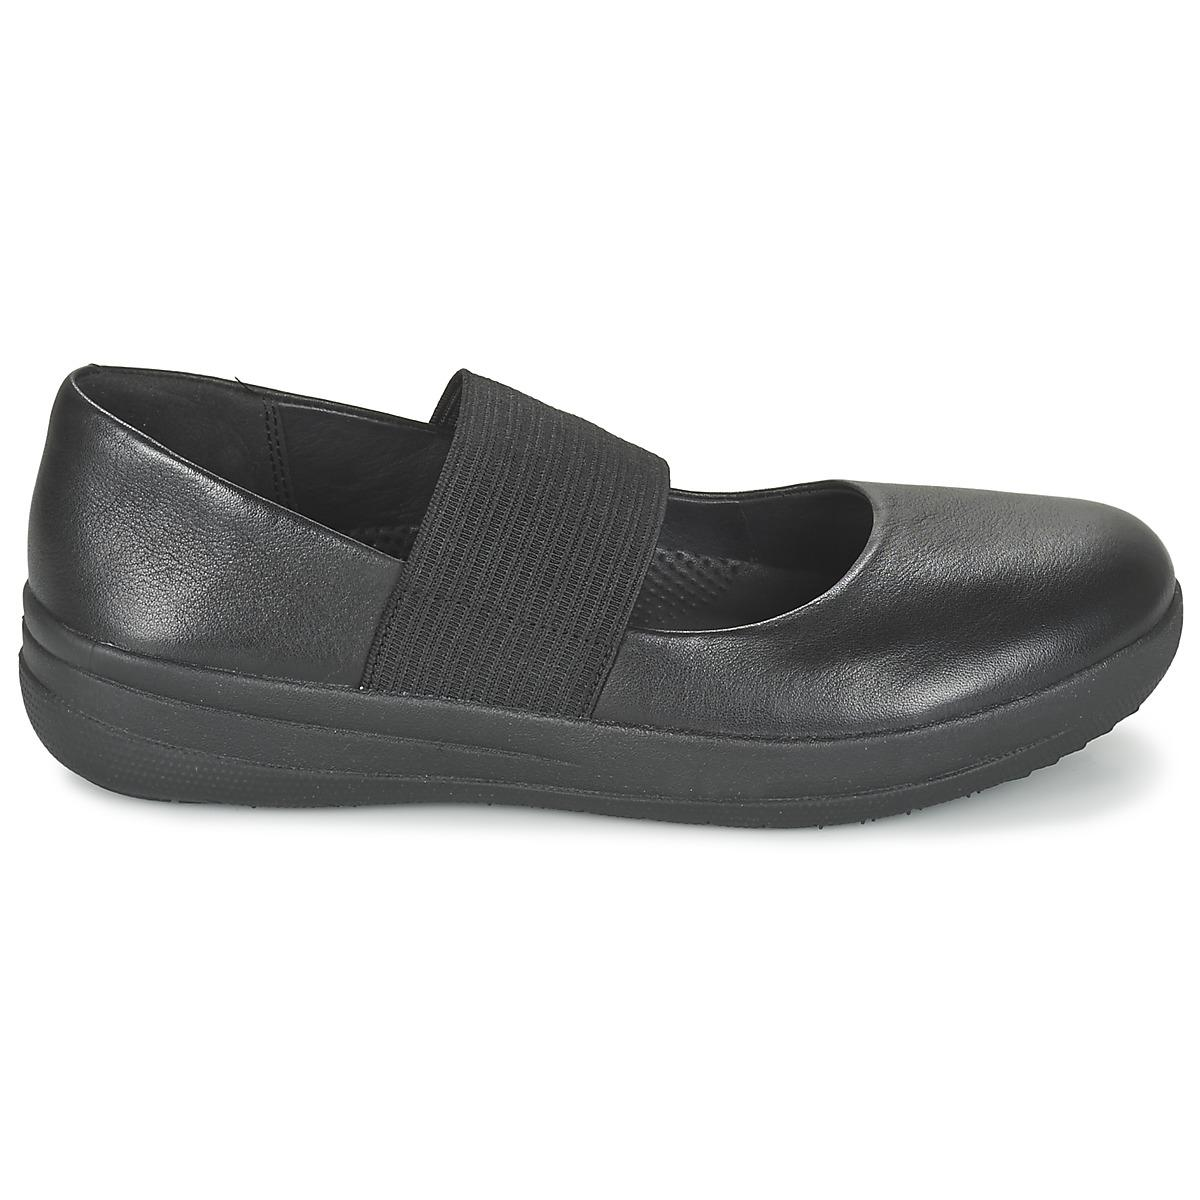 49b304d5edce Fitflop - F-sporty Mary Jane Women s Shoes (pumps   Ballerinas) In Black.  View fullscreen